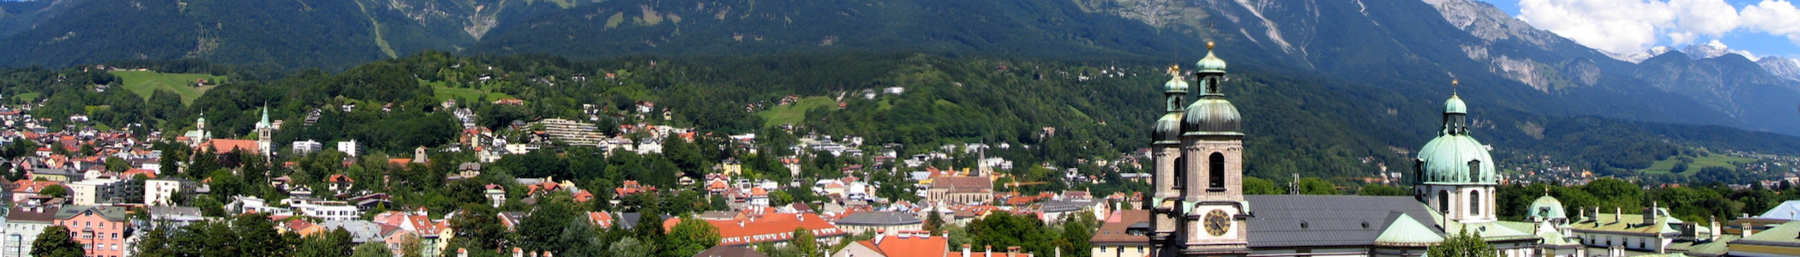 Wikivoyage Innsbruck banner.png